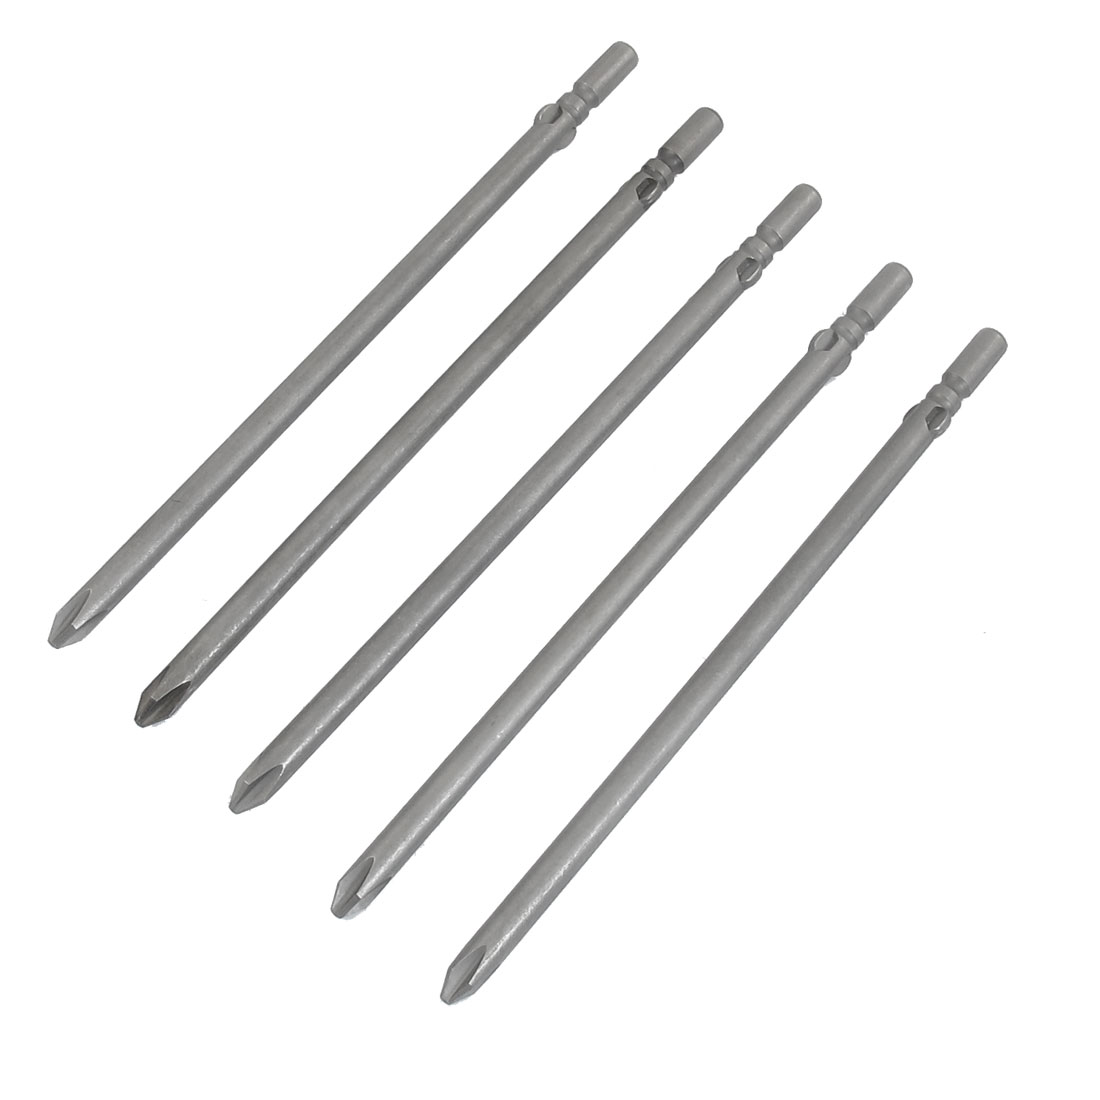 Magnetic 3mm PH2 Phillips Cross Head Screwdriver Bits 5 Pcs